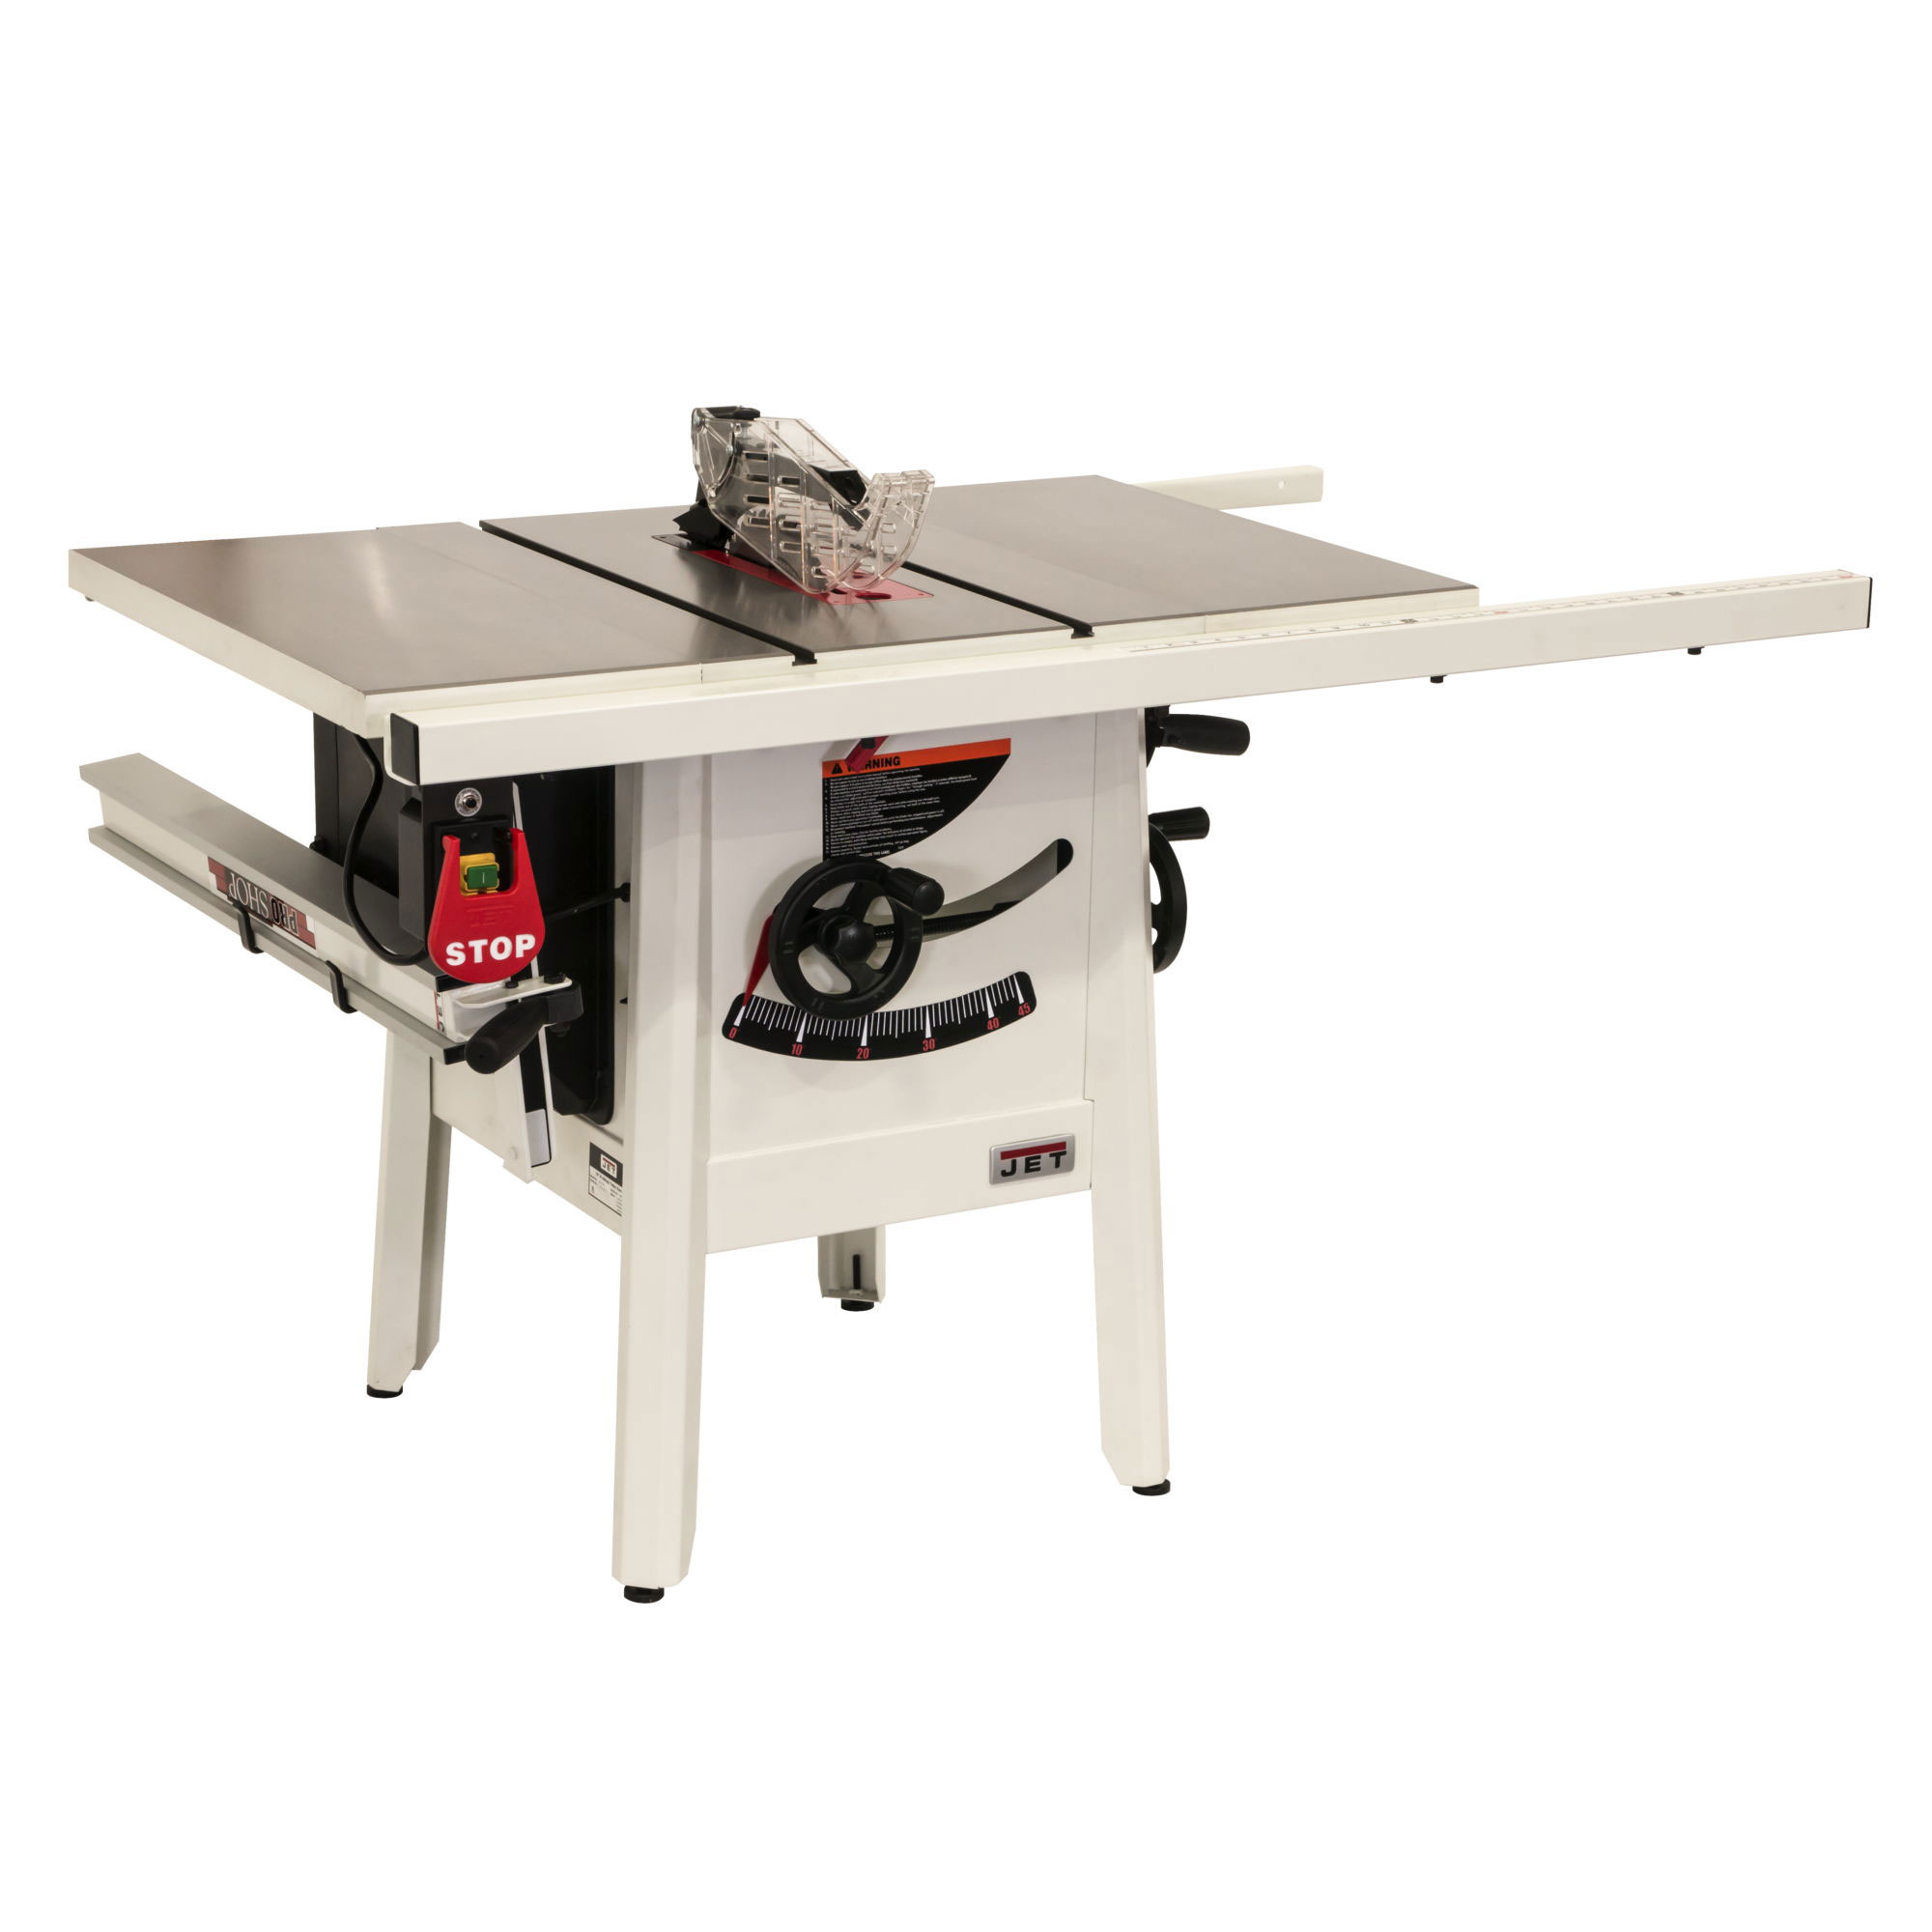 ProShop II Table Saw with Cast Wings, 115V, 30